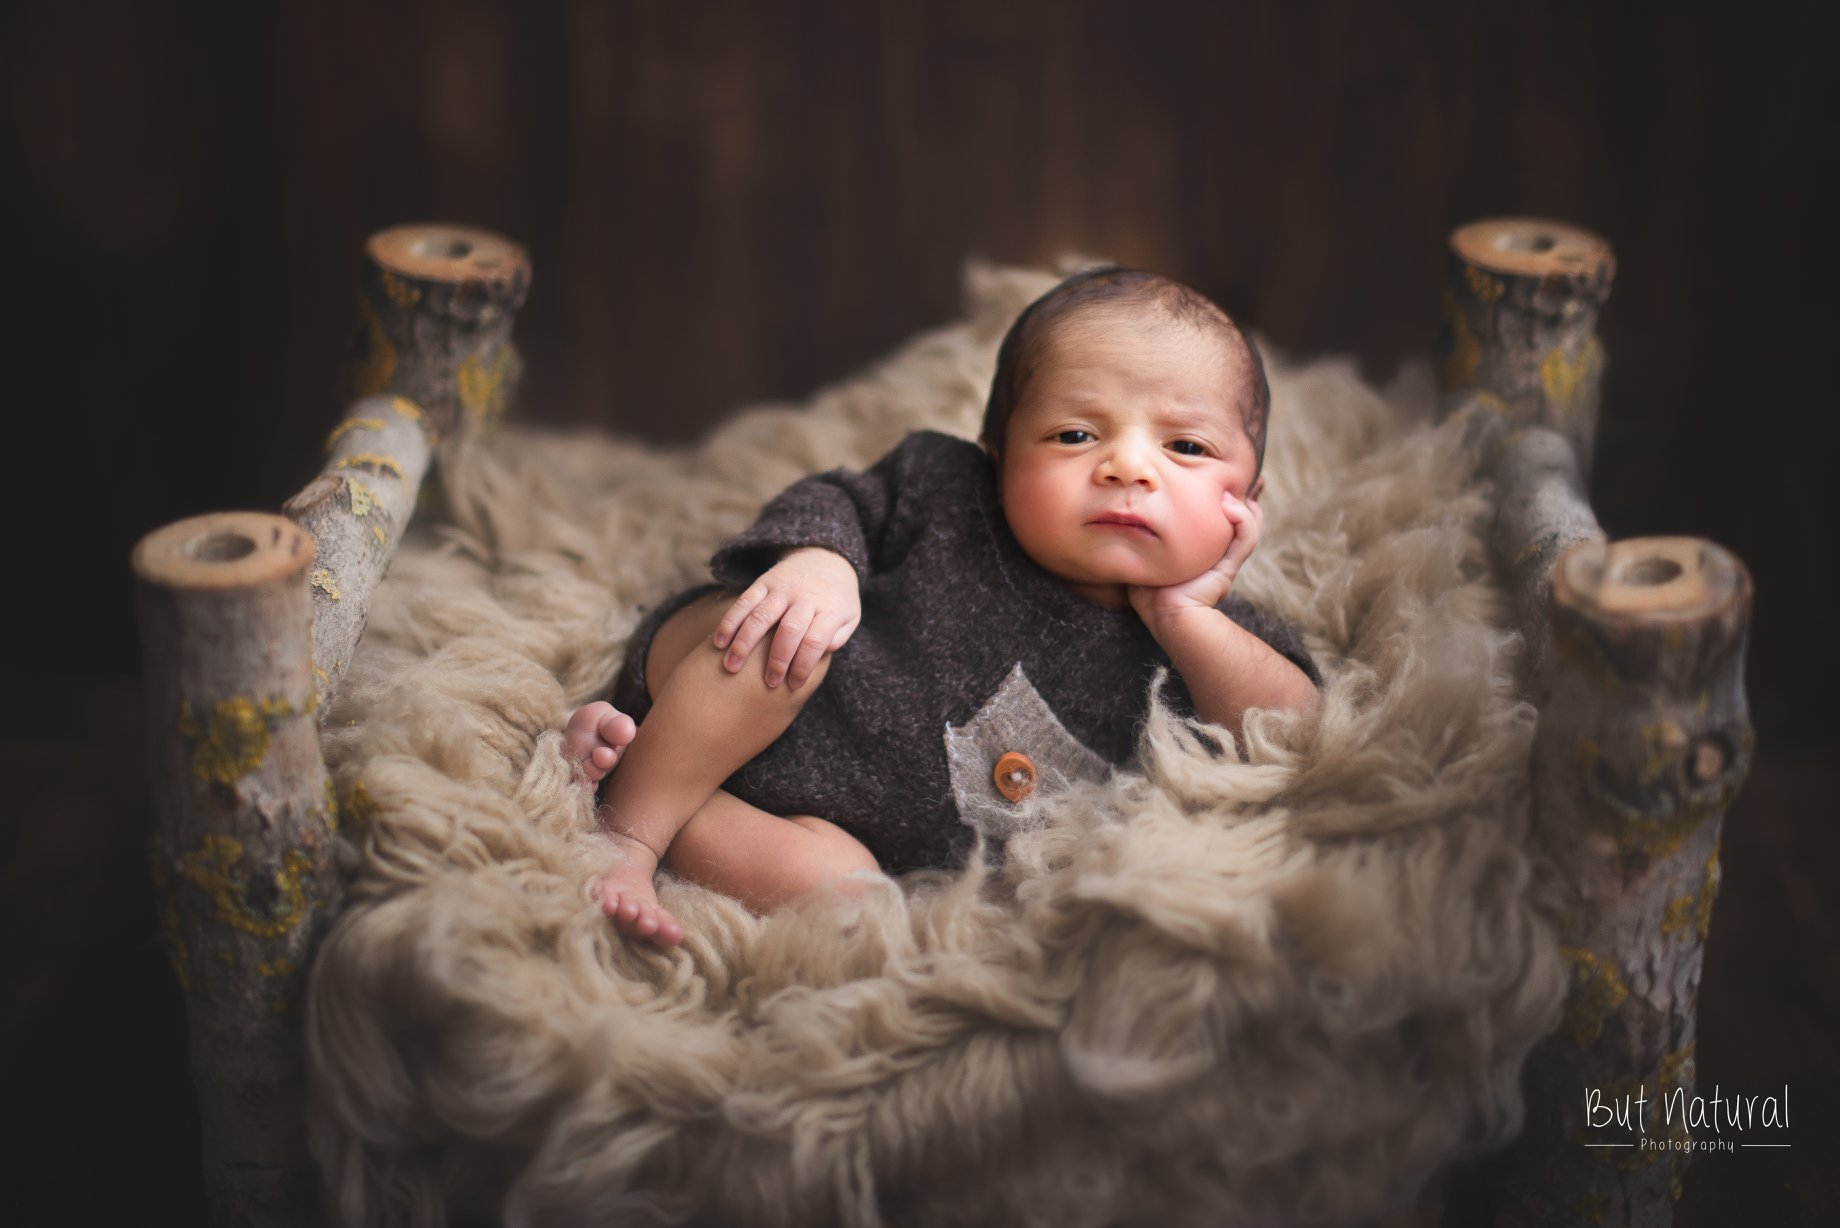 Newborn baby photoshoot by Sujata Setia   But Natural Photography